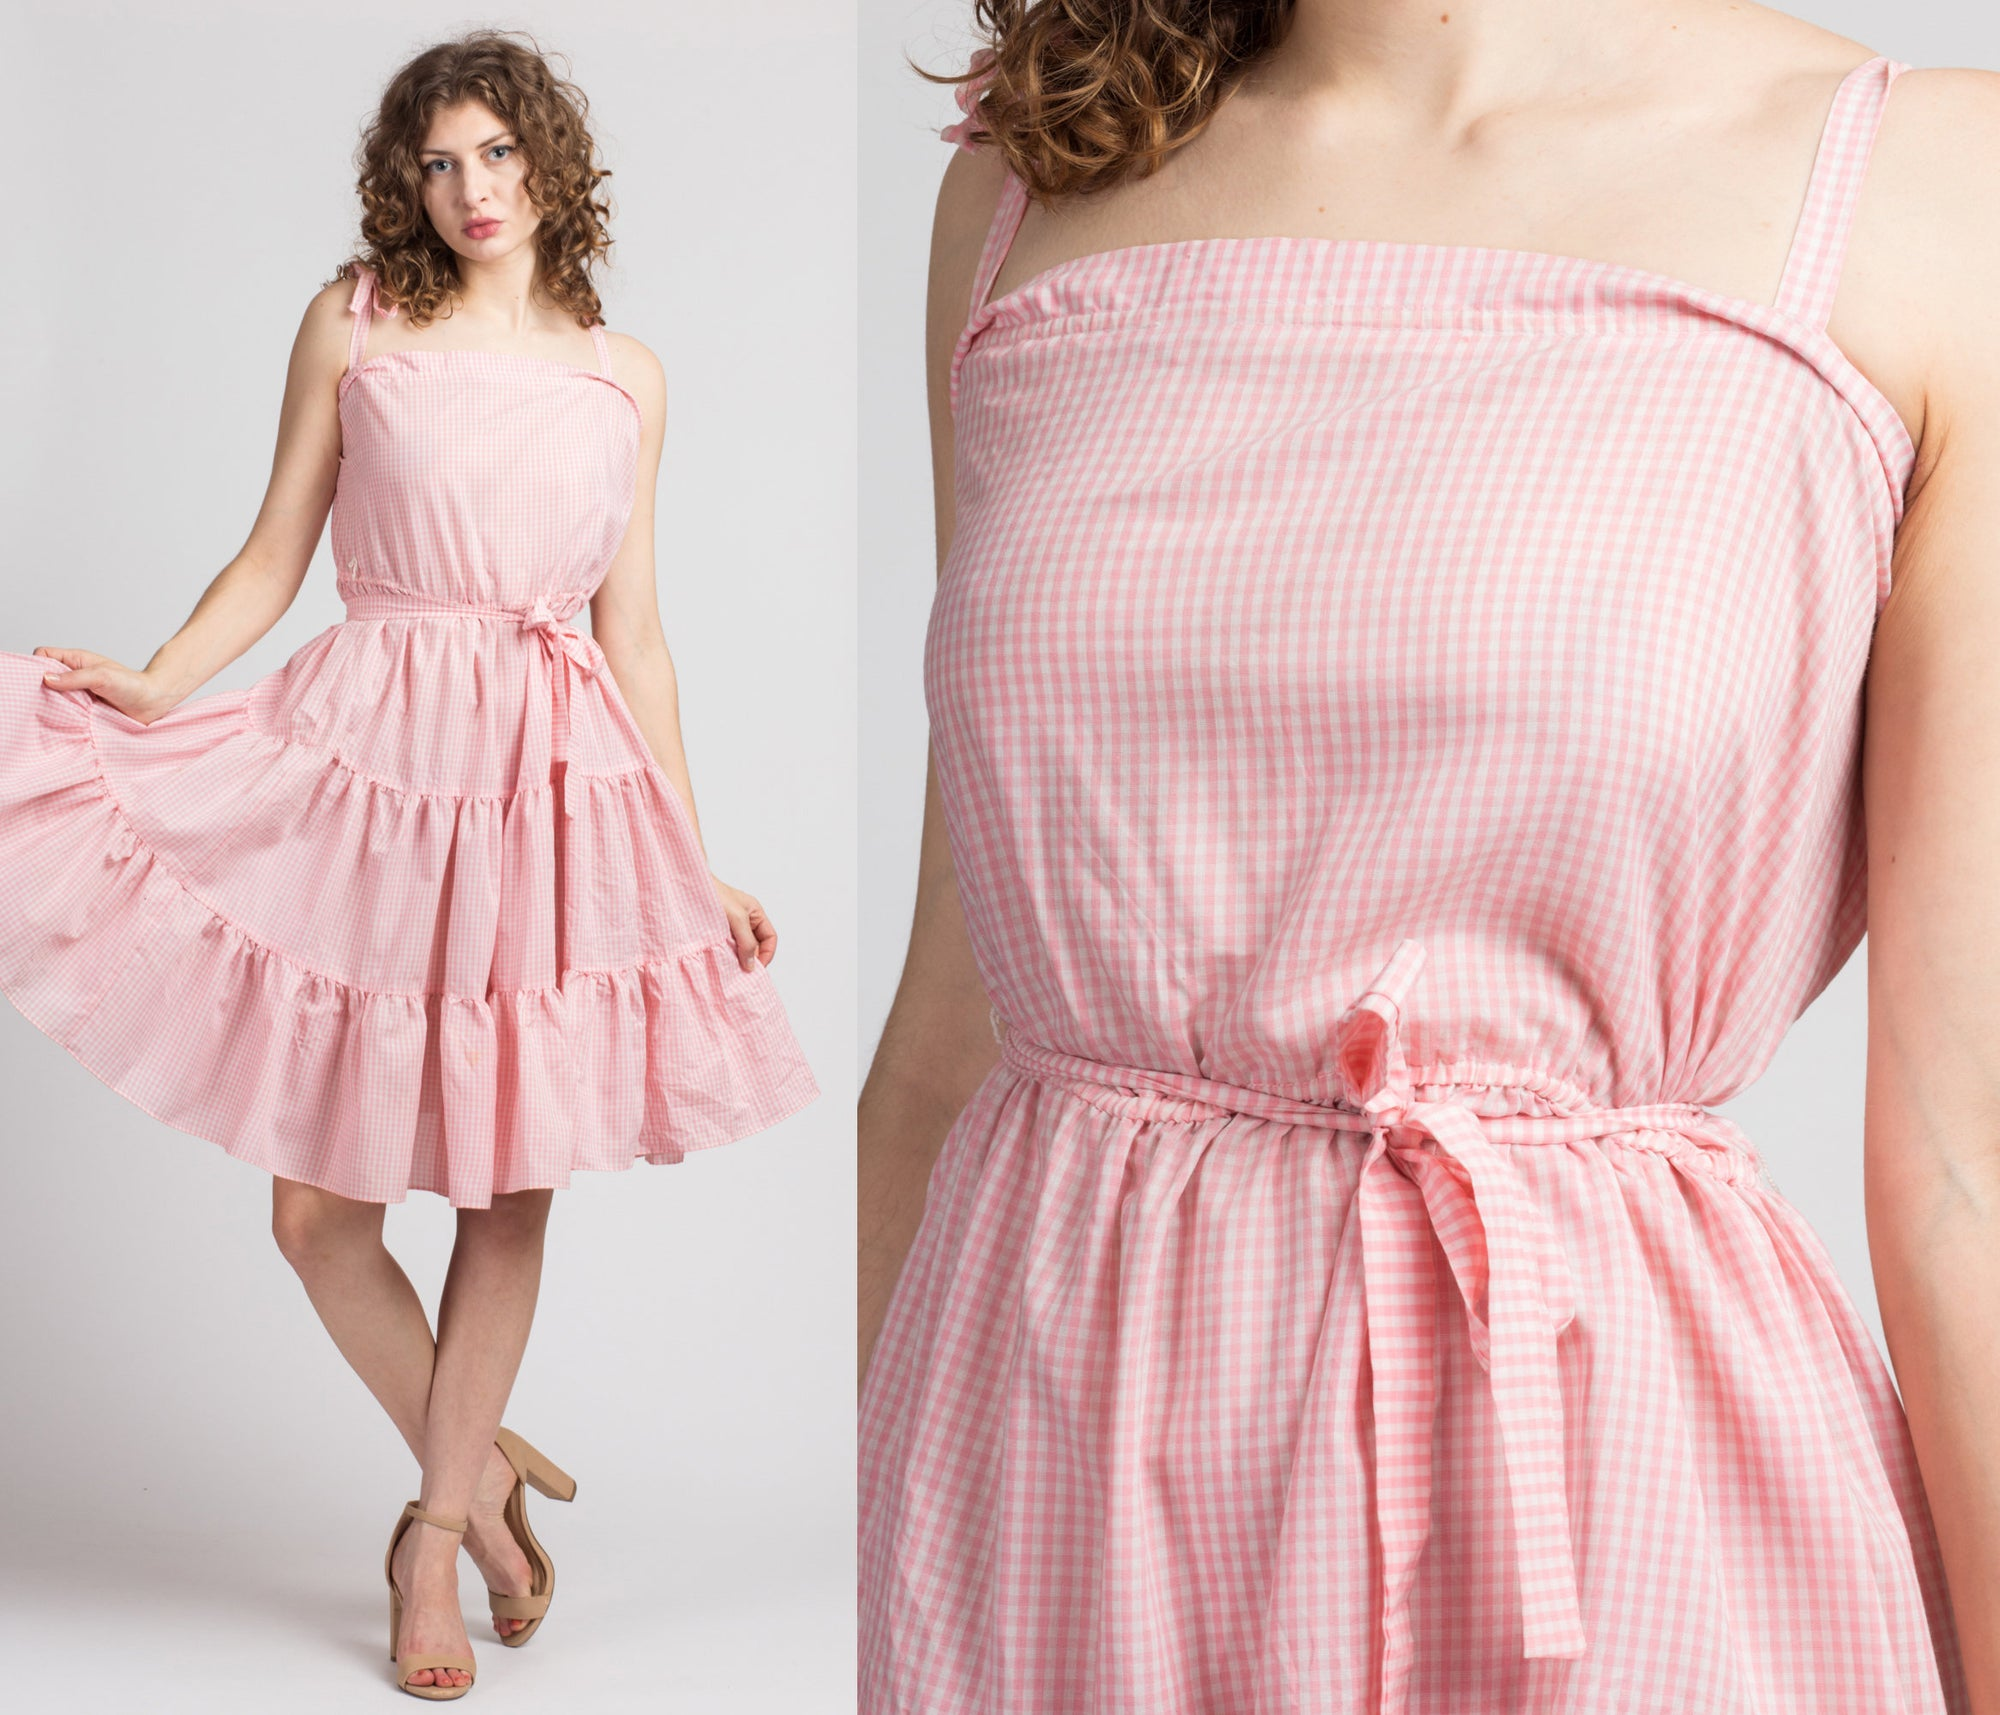 60s Pink & White Gingham Summer Dress - Large